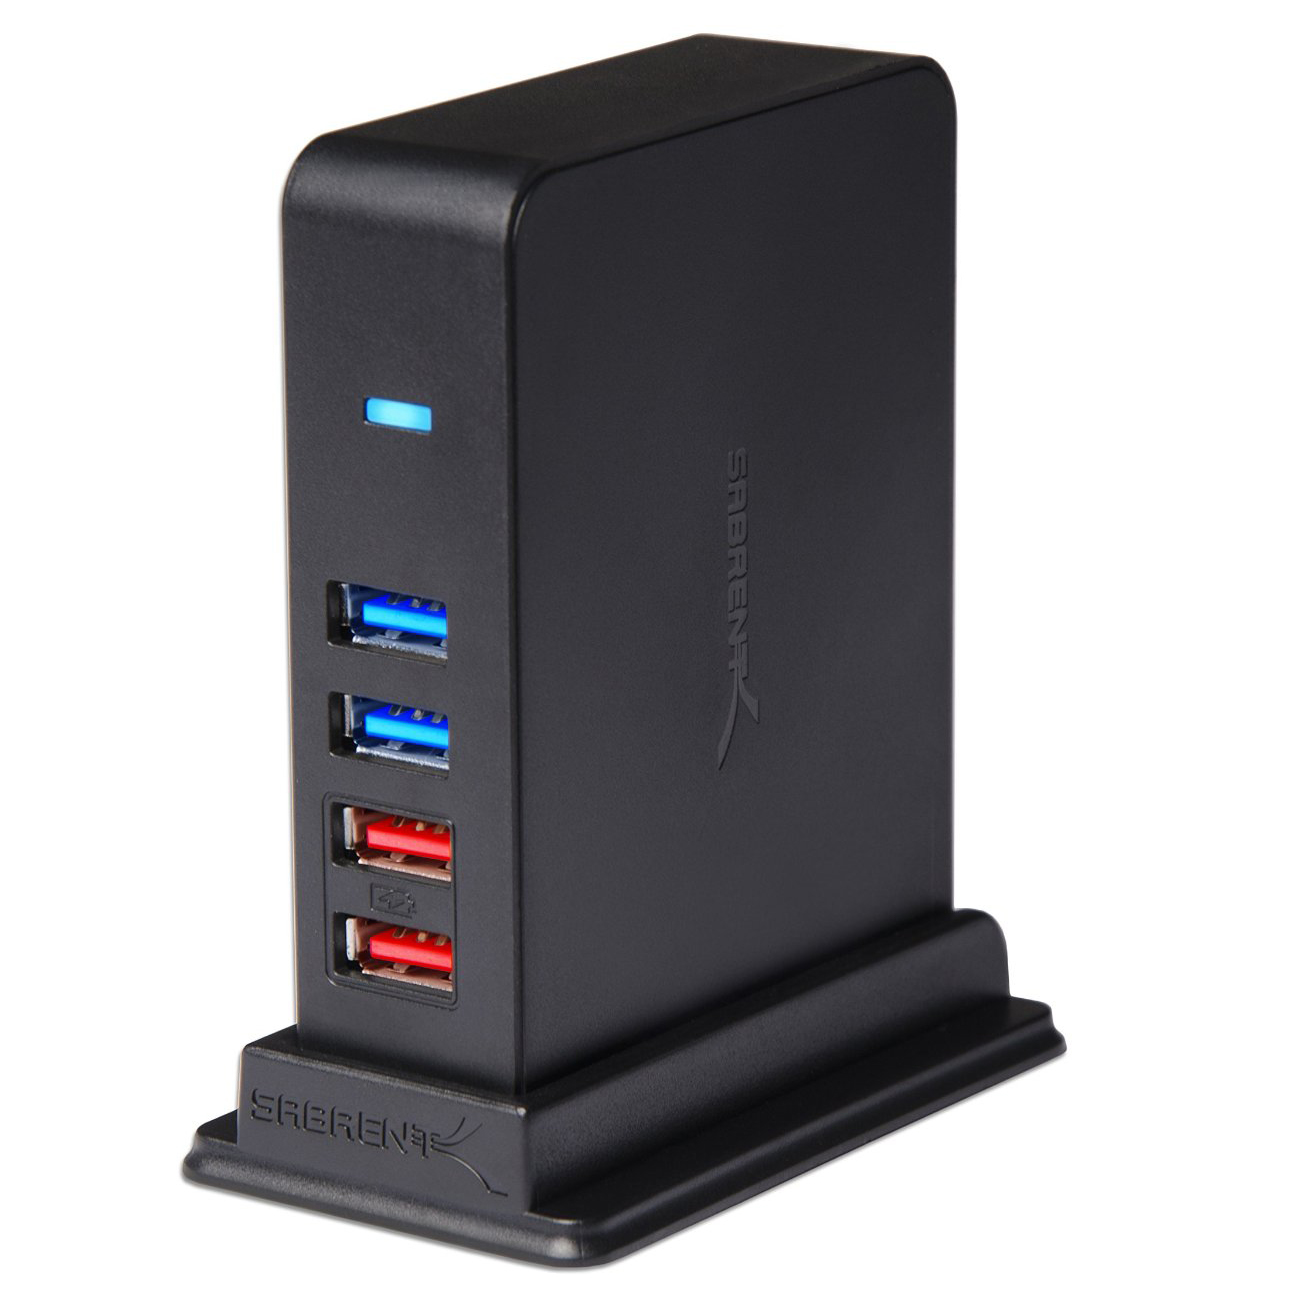 Sab 7 Port Usb 2 0 Hub Charging Ports W 12v 4a Power Adapter Hb U930 Com